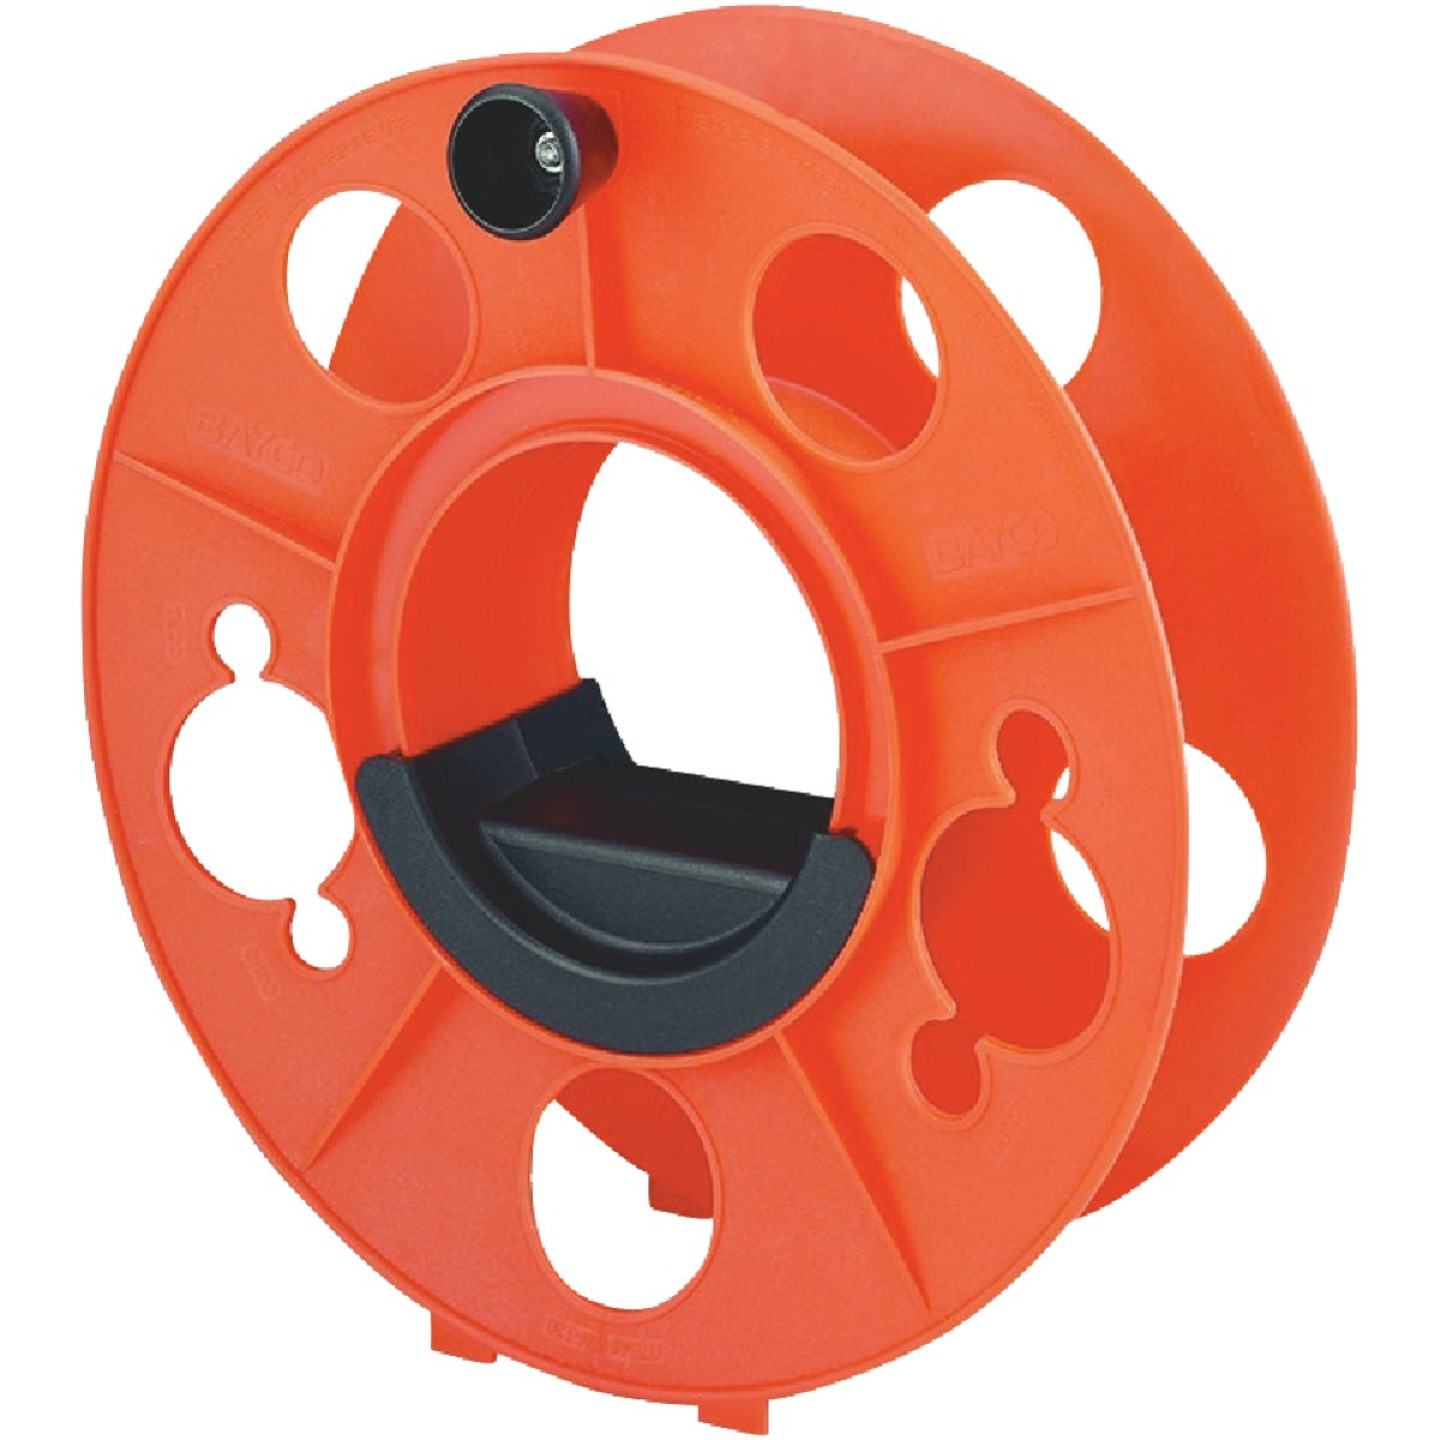 Bayco 150 Ft. of 16/3 Cord Capacity Plastic Cord Reel Image 1